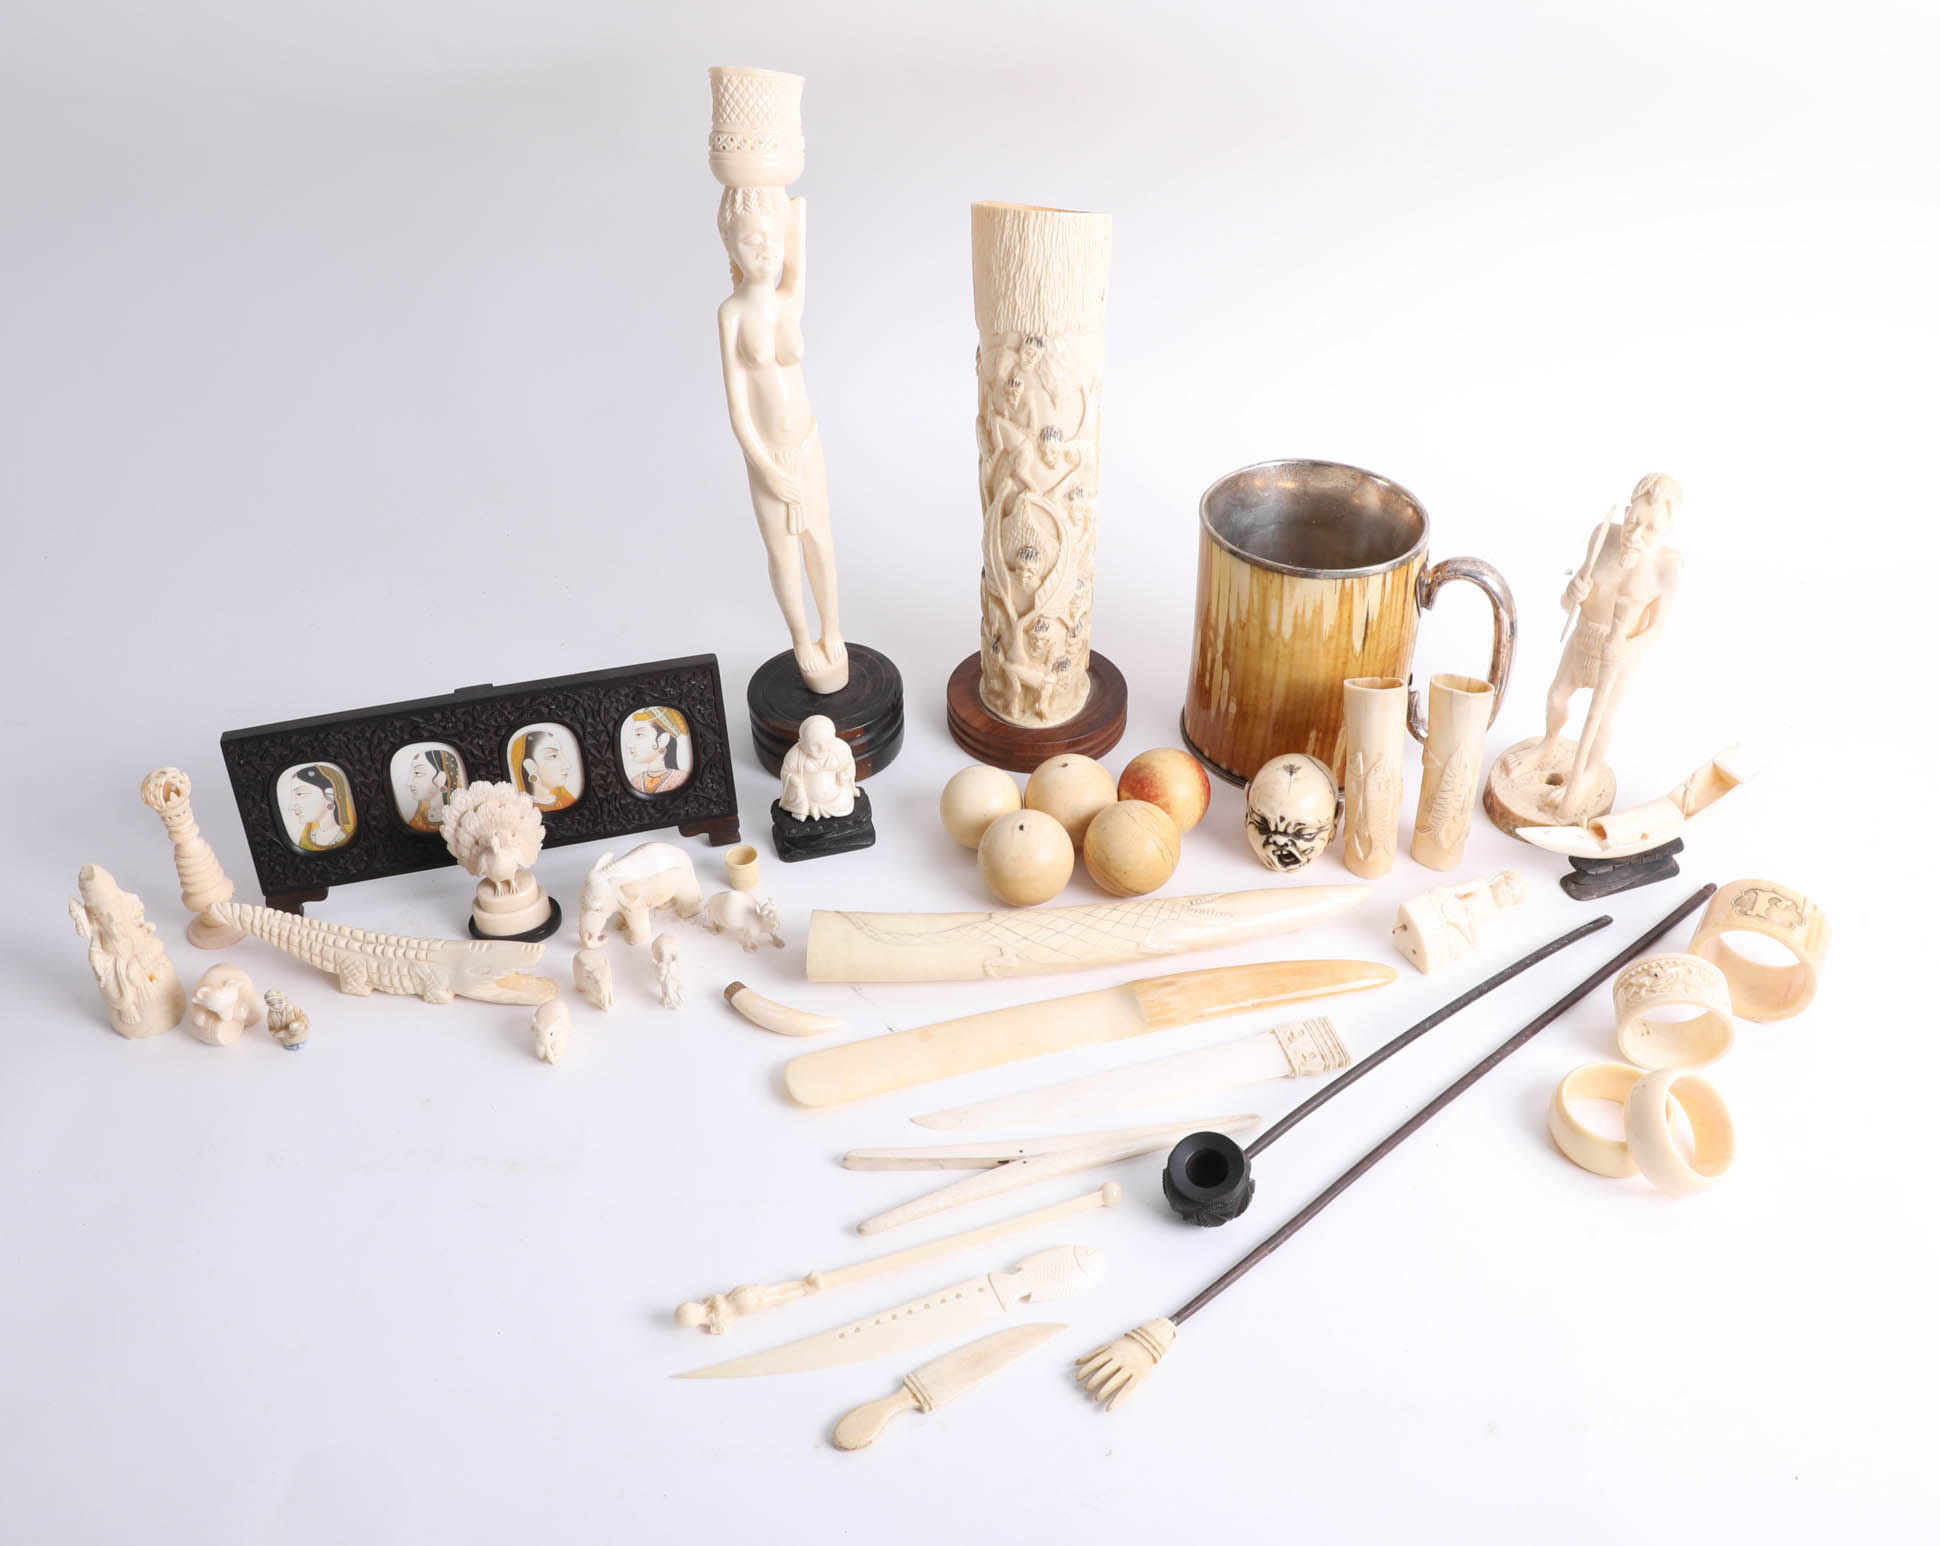 Lot 005 - Collection of various antique carved ivory/bone objects.